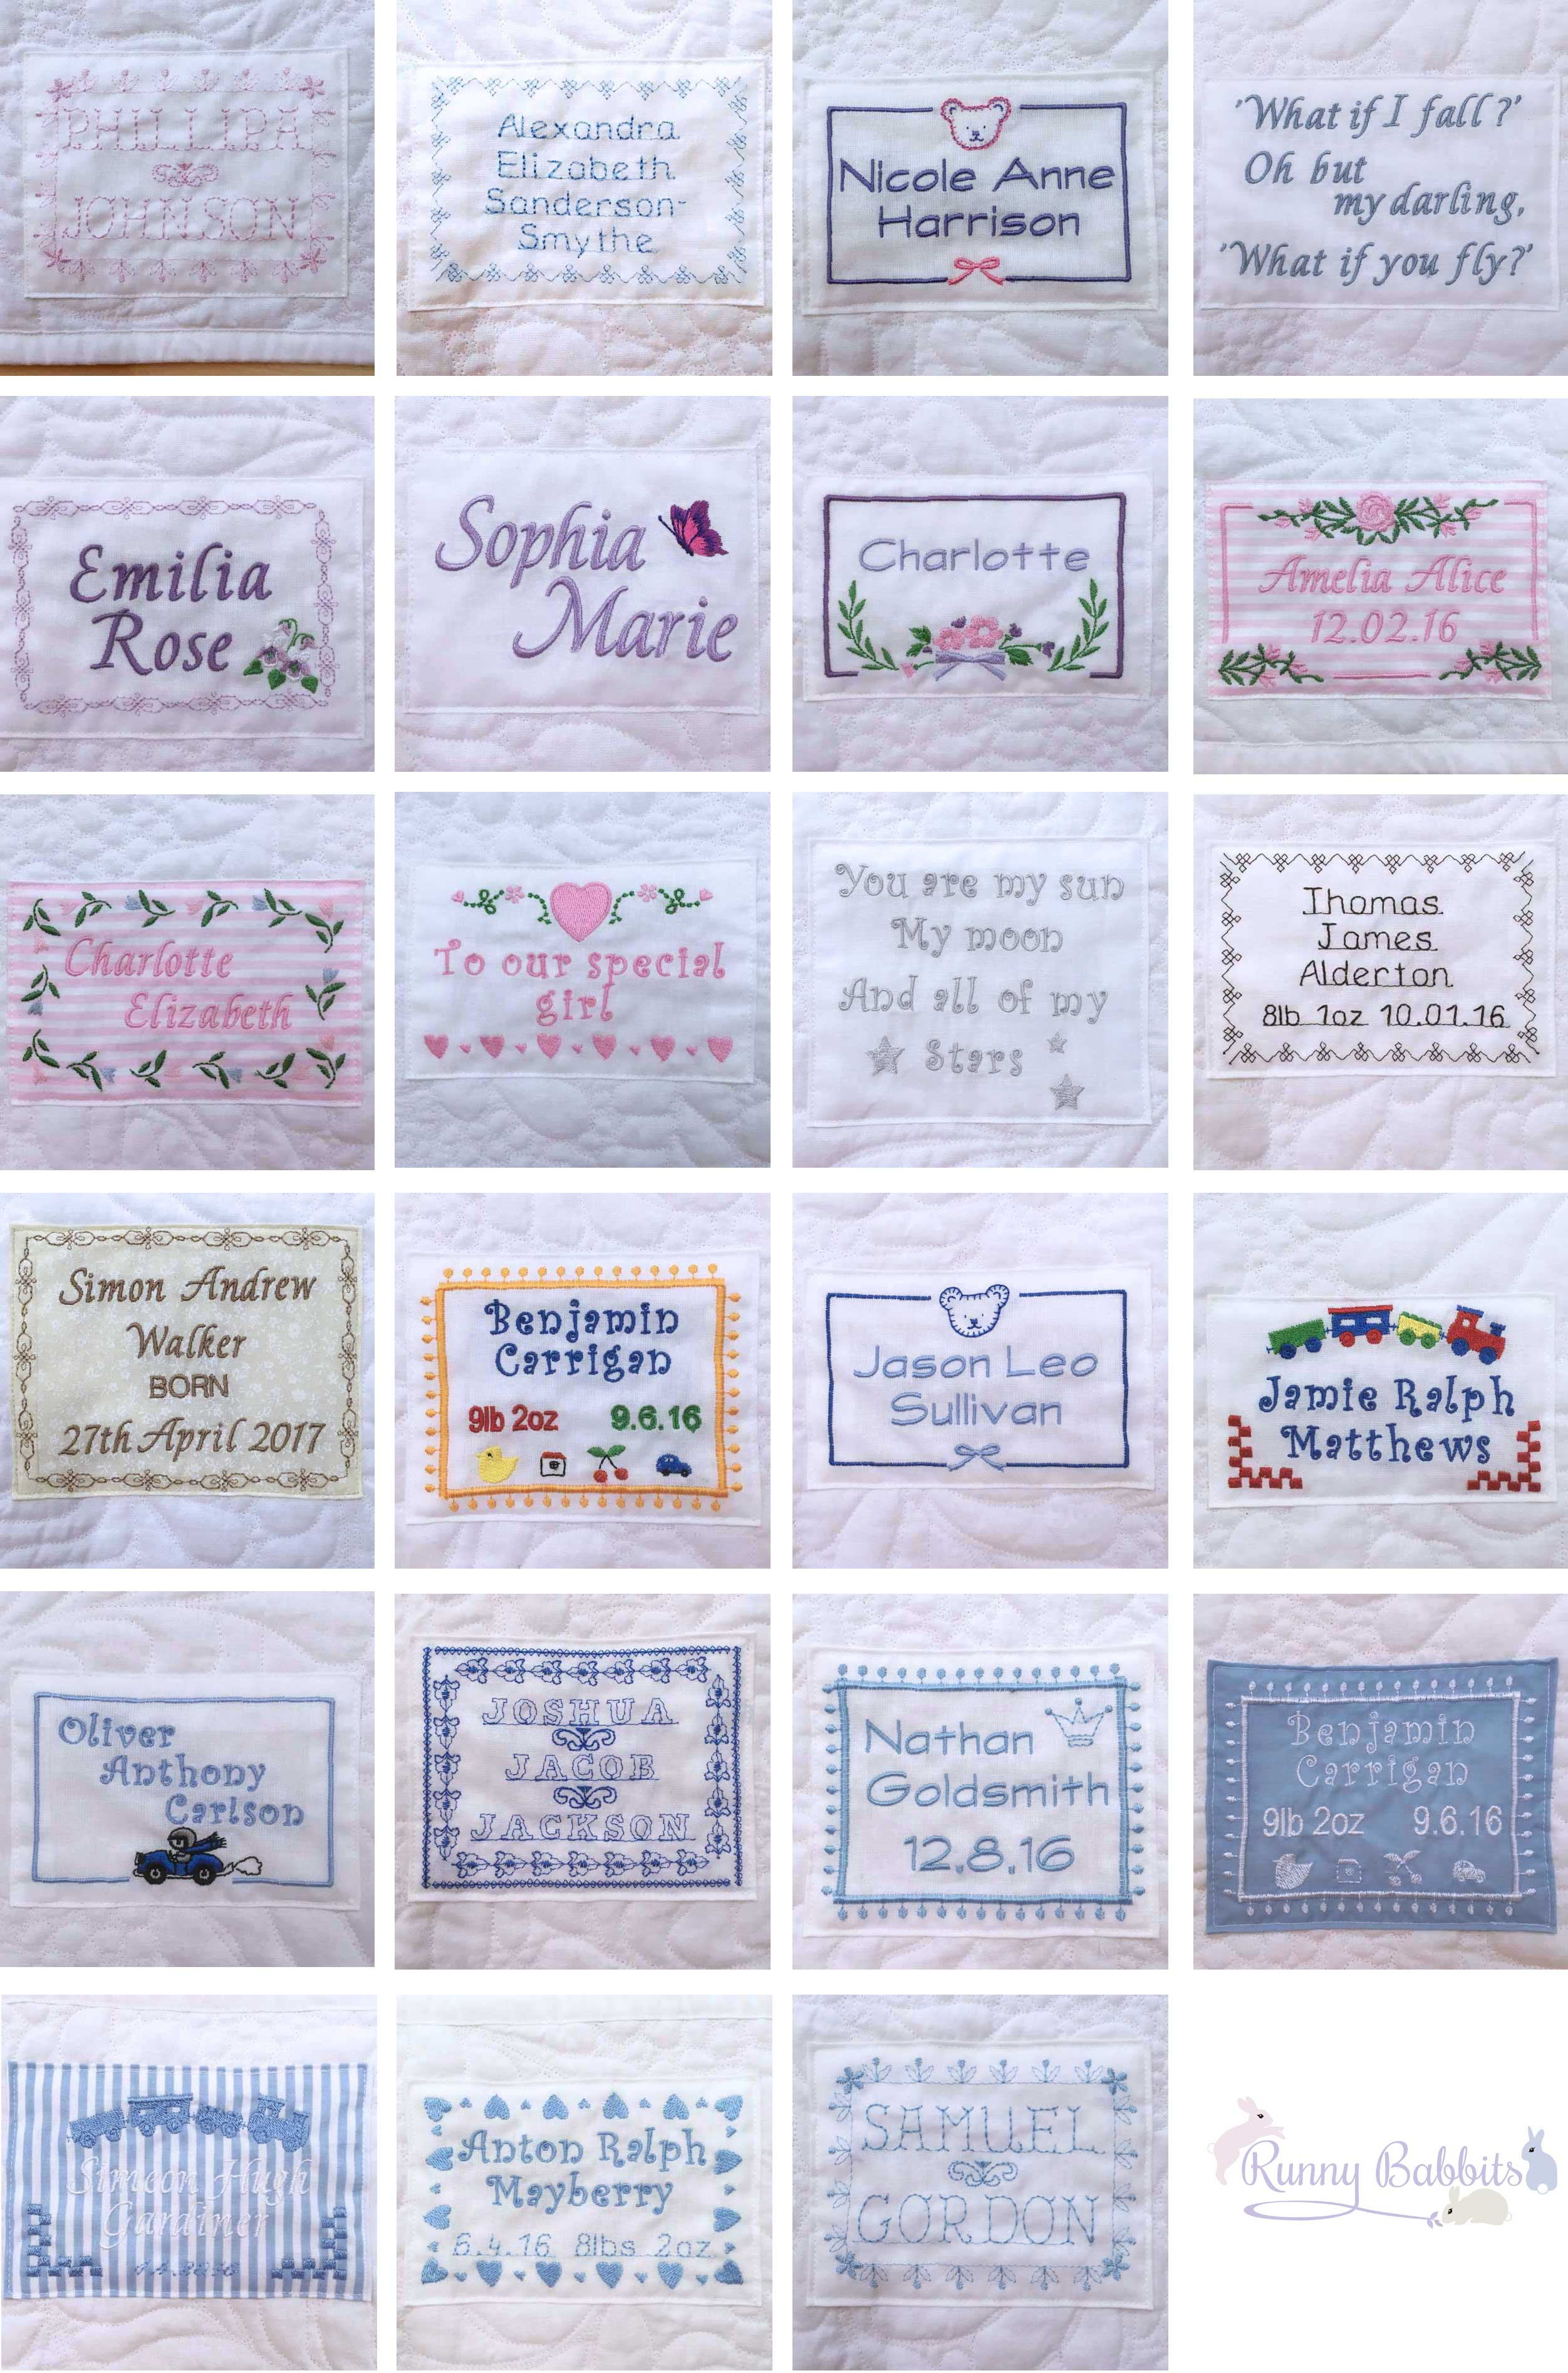 Runny Babbits personalised label options